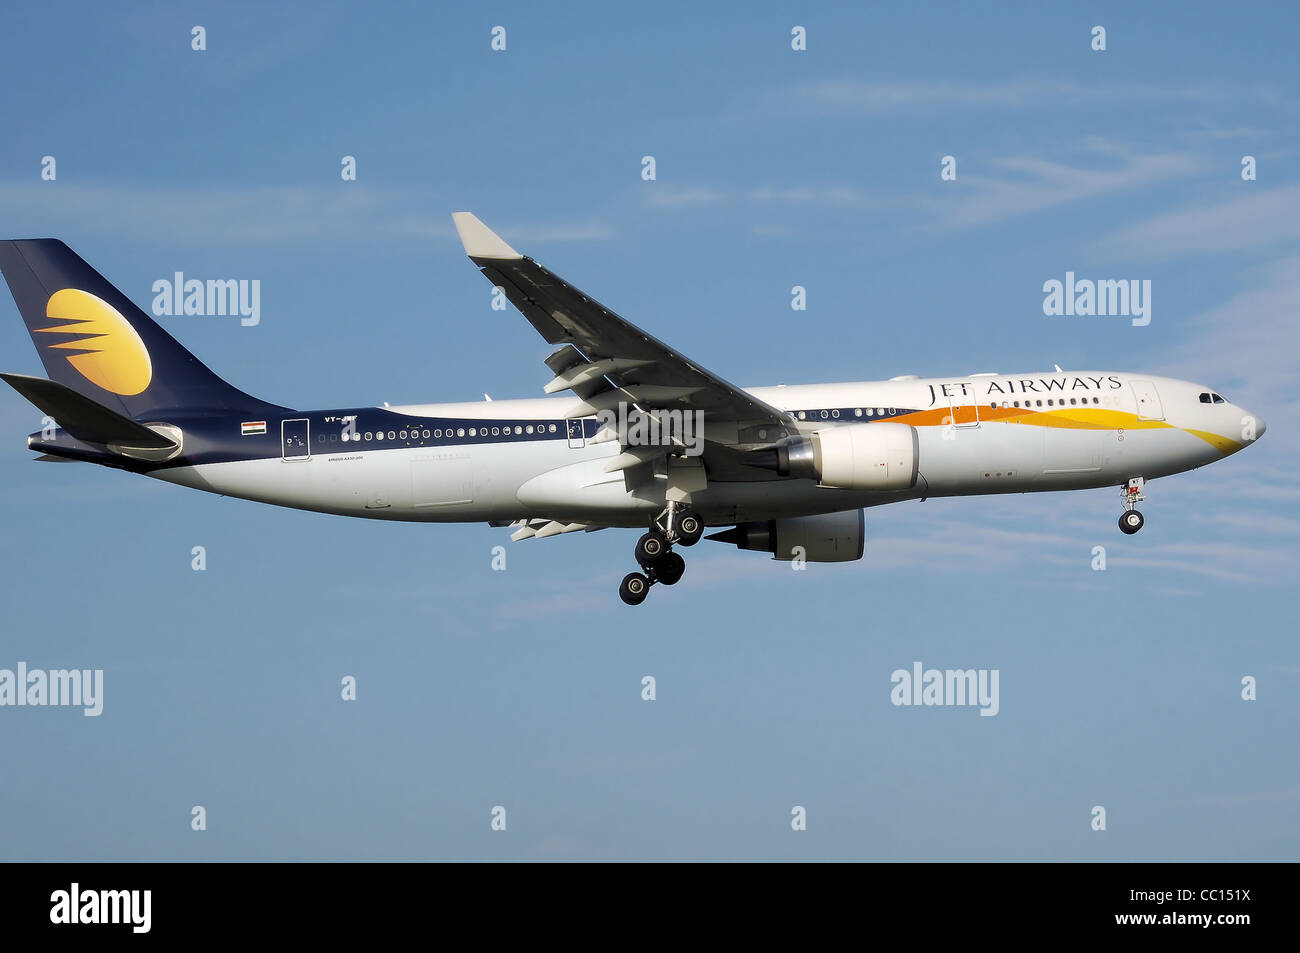 Jet Airways Airbus A330-200 (VT-JWF) lands at Birmingham International Airport, England. - Stock Image